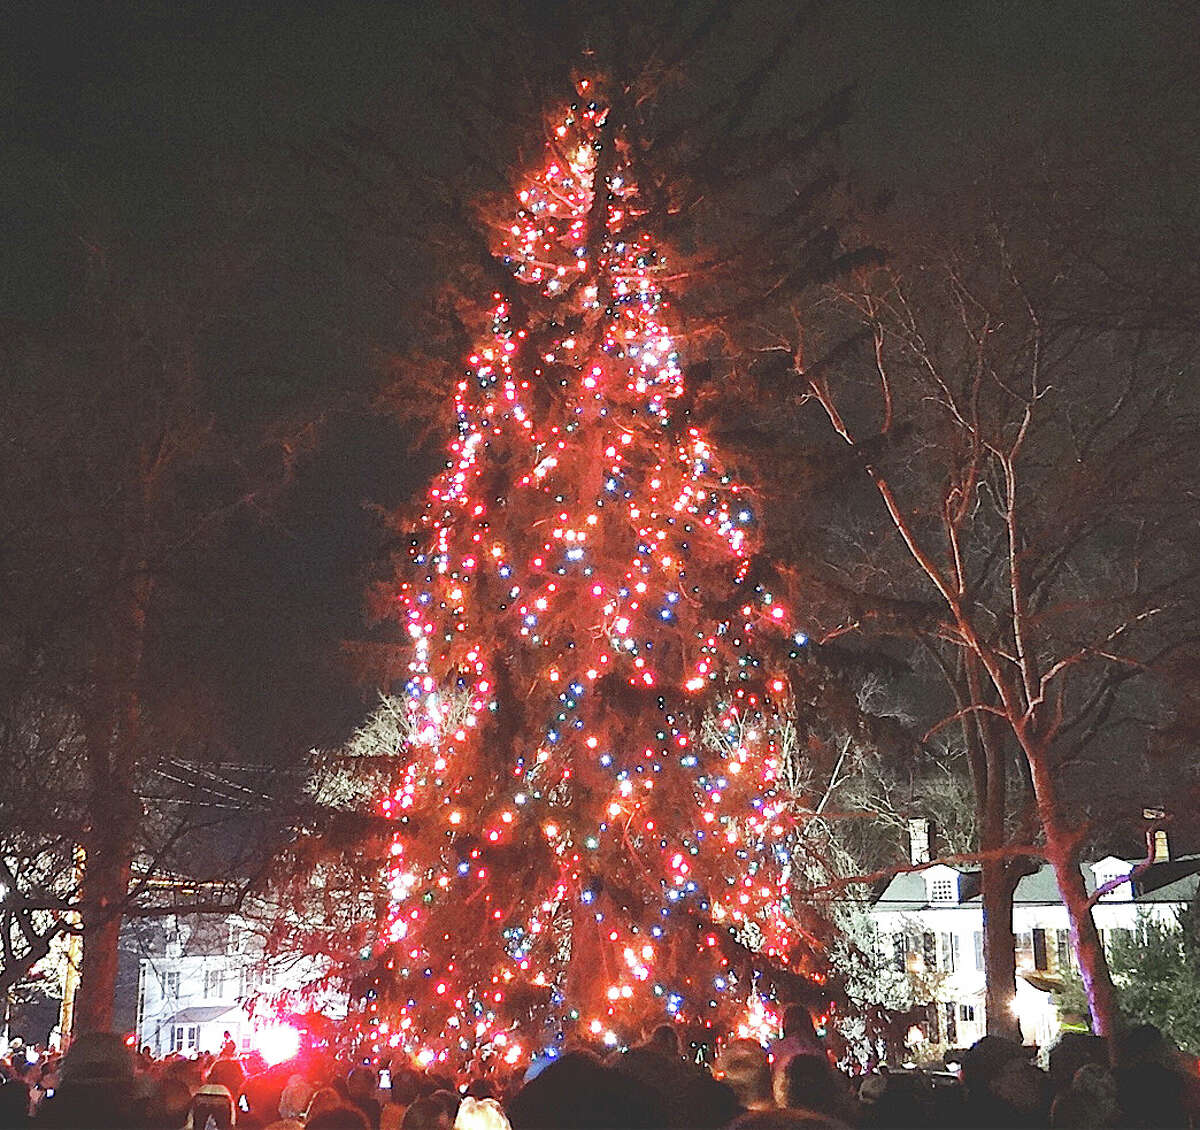 The 90-foot-tall Norway spruce tree -- believed to be the tallest live tree illuminated for the holidays in the state -- glows on Town Hall Green after the annual lighting ceremonies Friday evening.